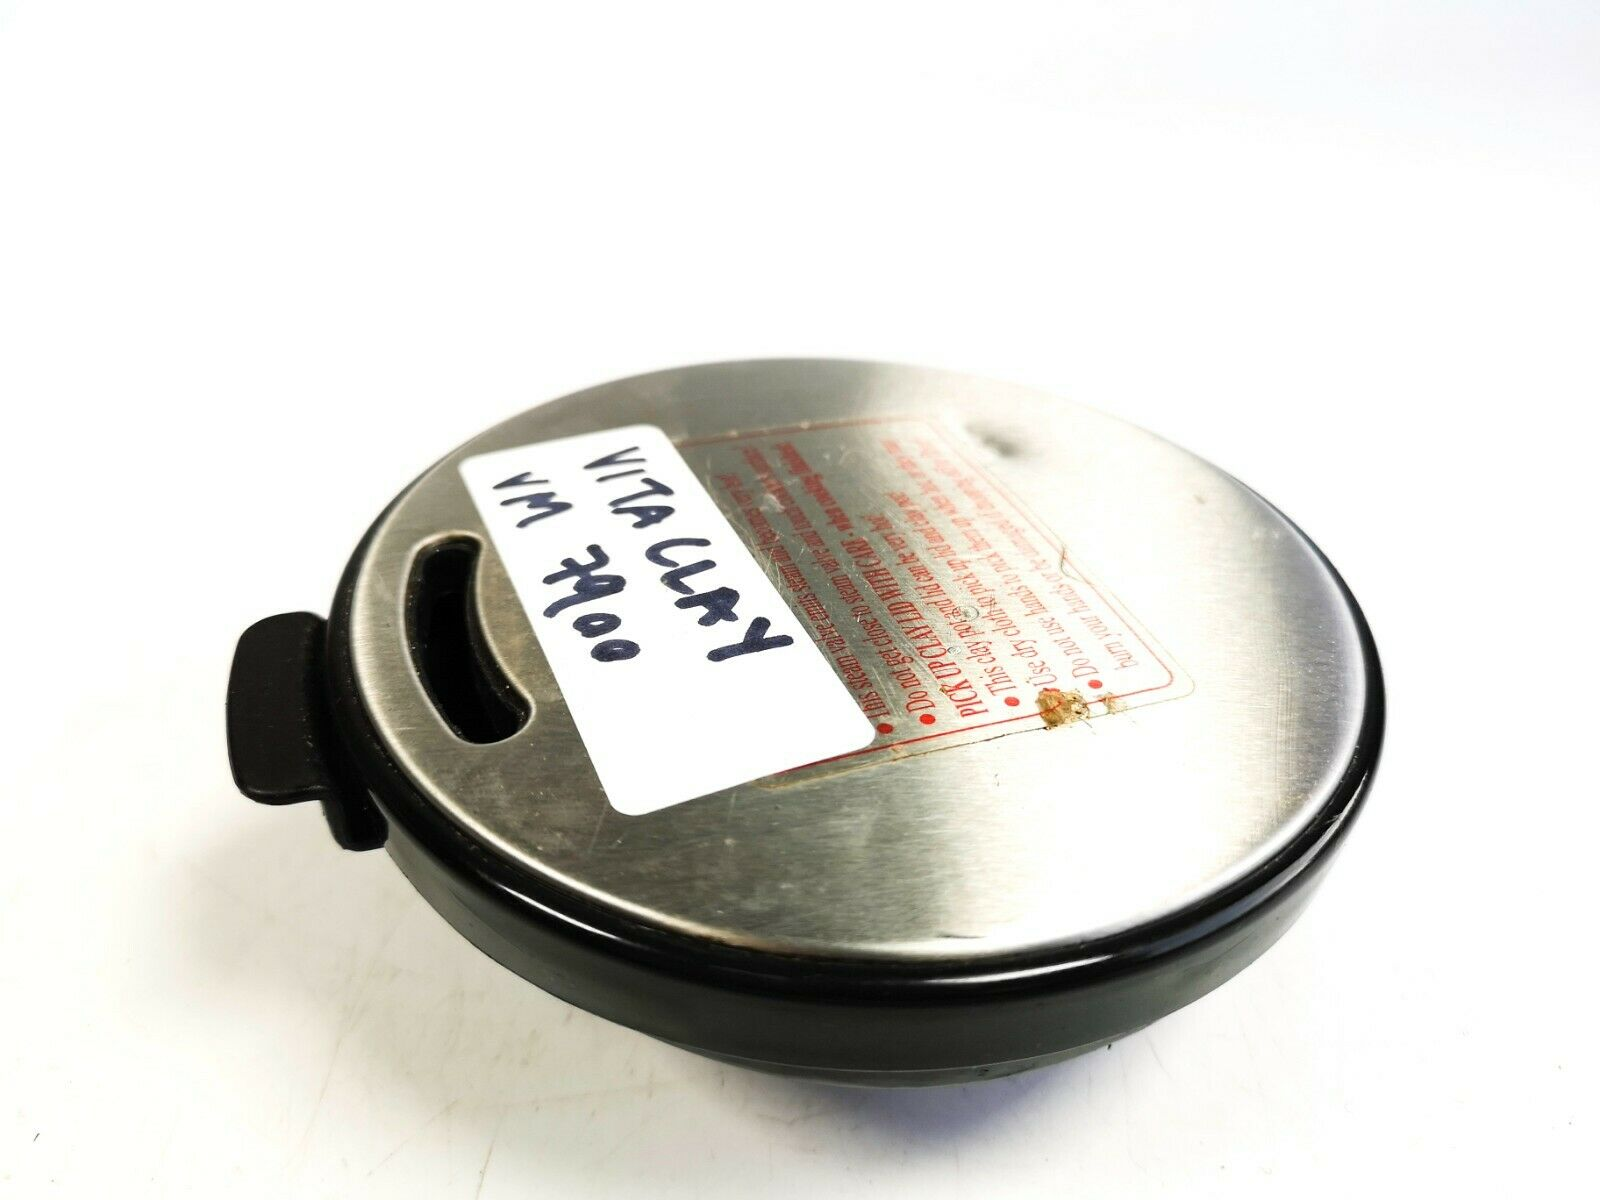 VitaClay Chef 8-Qt Slow Cooker Steam Cap - Fits VM7900 Only